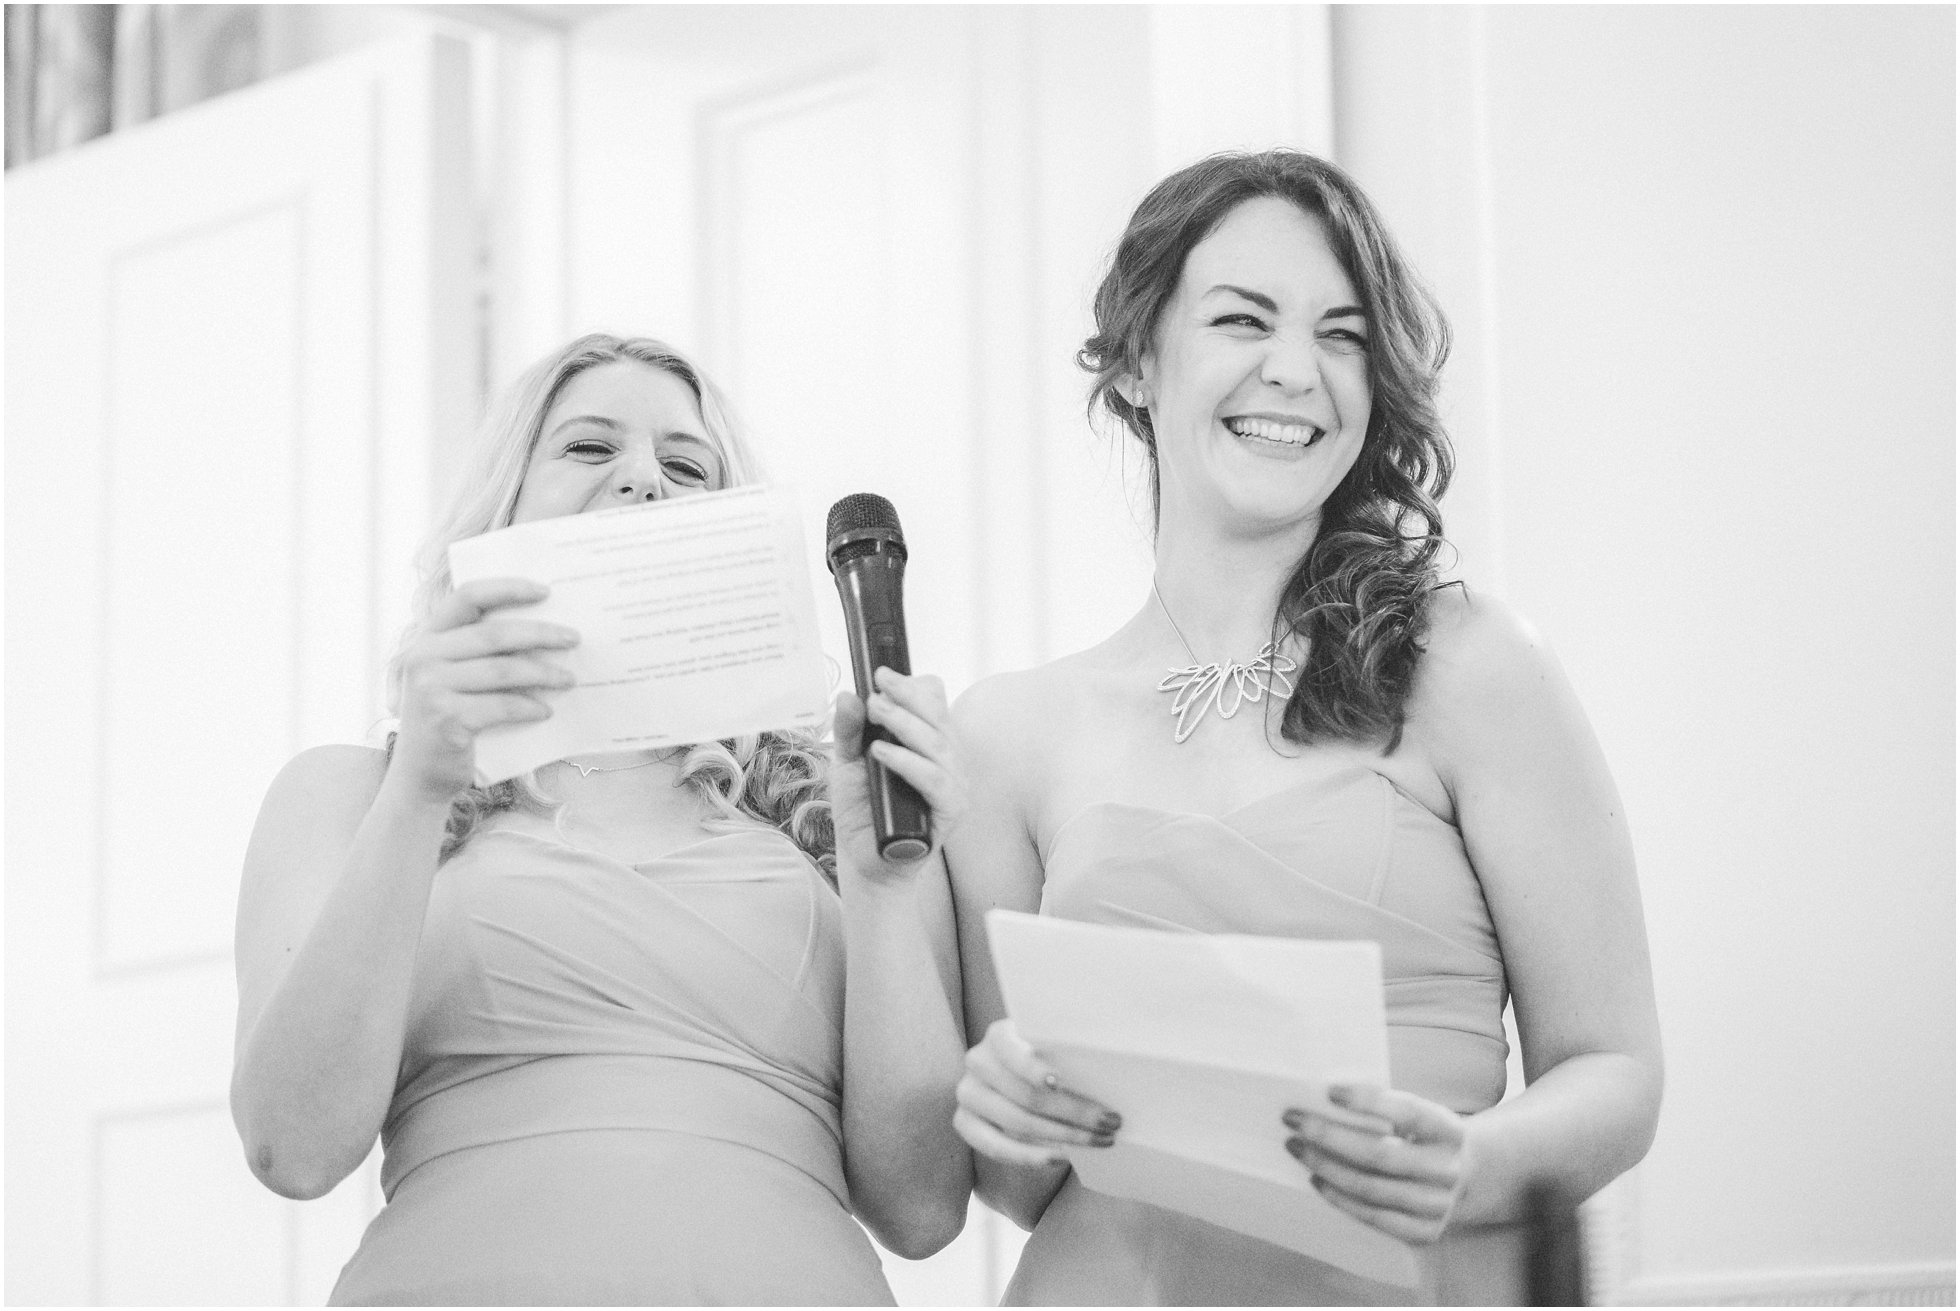 The bridesmaids delivering a cheeky speech